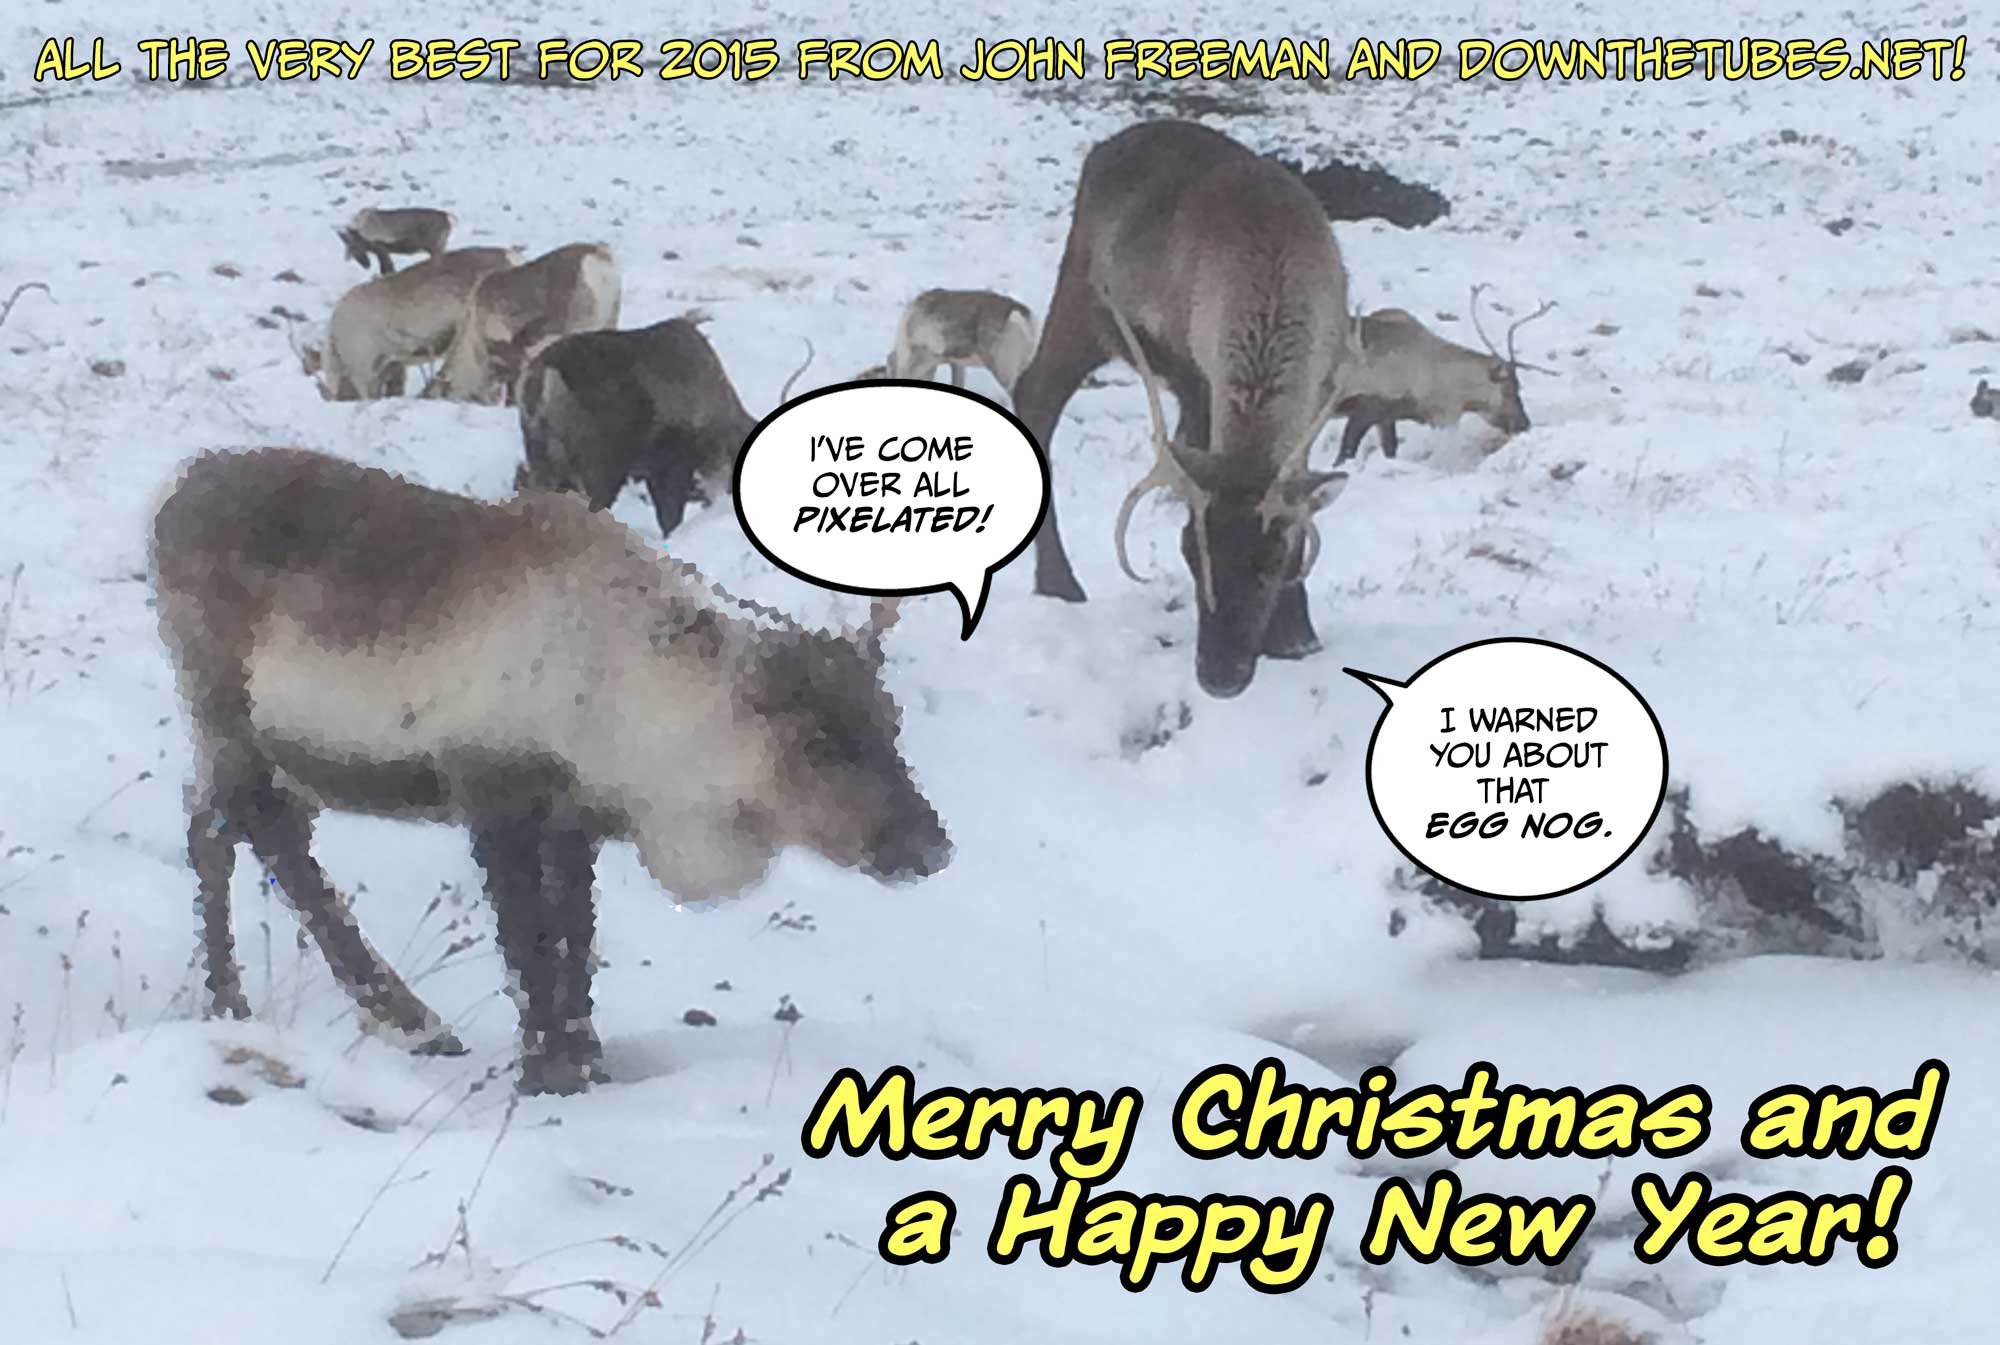 Merry Christmas and Happy New Year to All Our Readers!